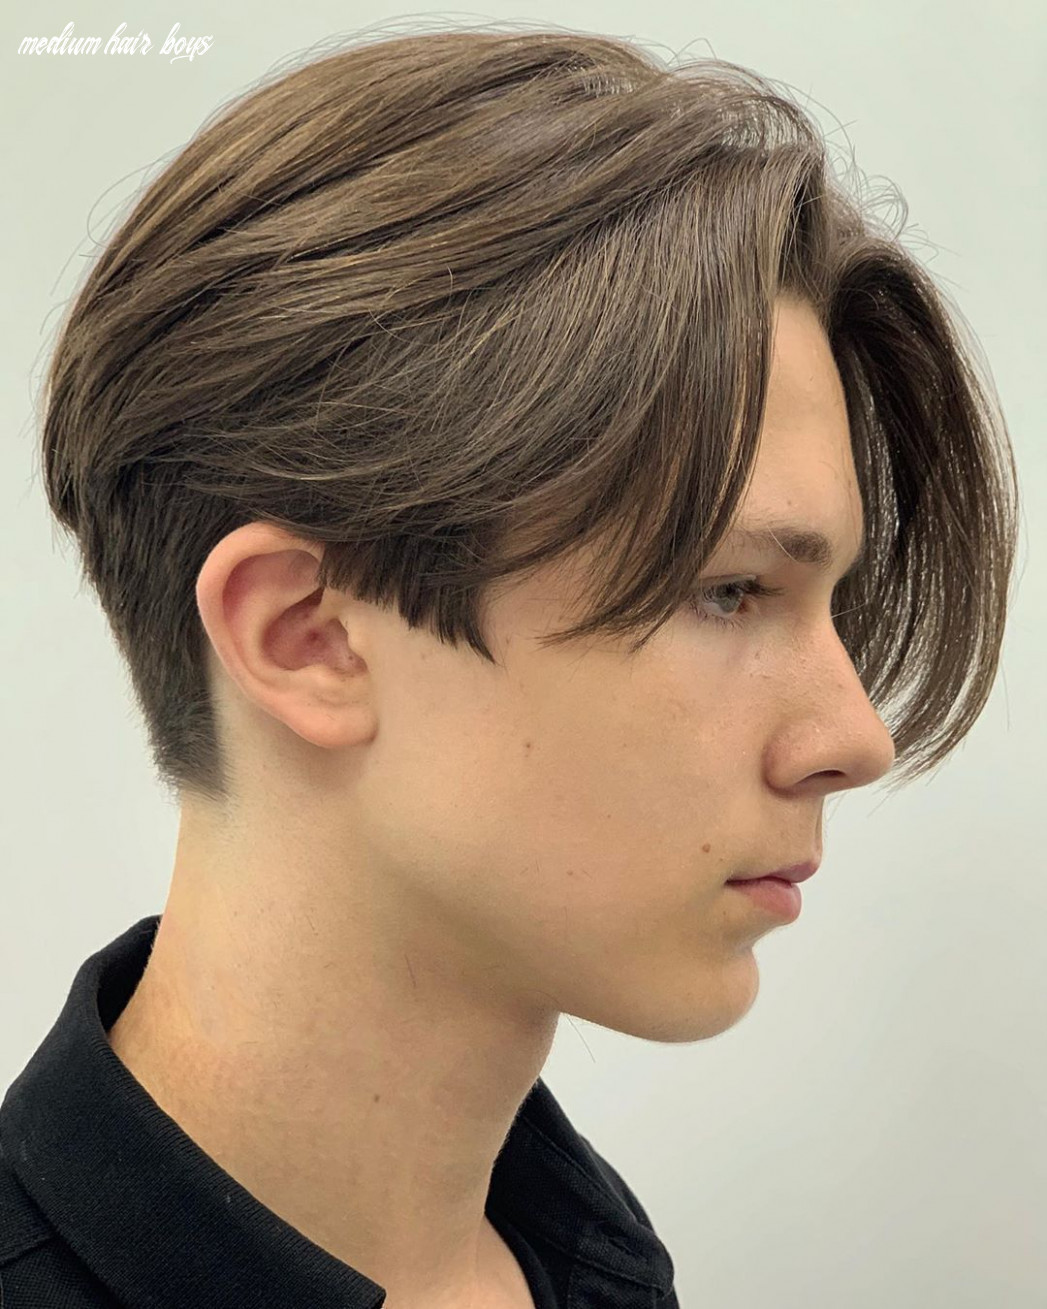 Pin on stylehairs medium hair boys